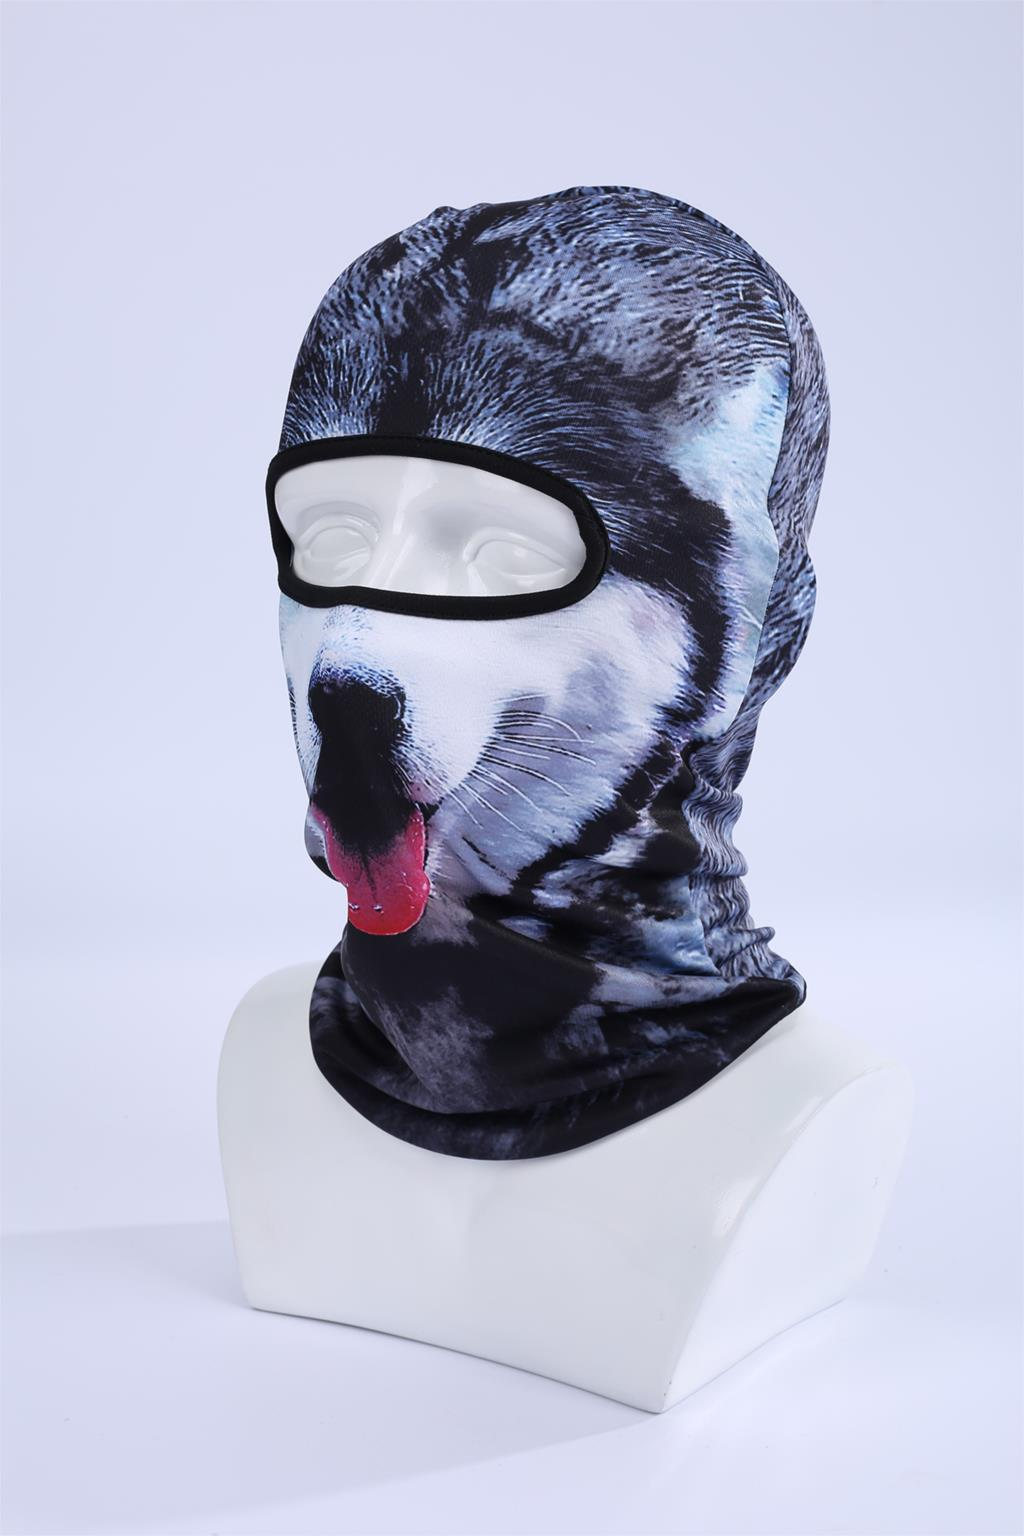 Hot Sale 2016 3D Cap Dog Animal Outdoor Sports Bicycle Cycling Motorcycle Masks Ski Hood Hat Veil Balaclava UV Full Face Mask 8